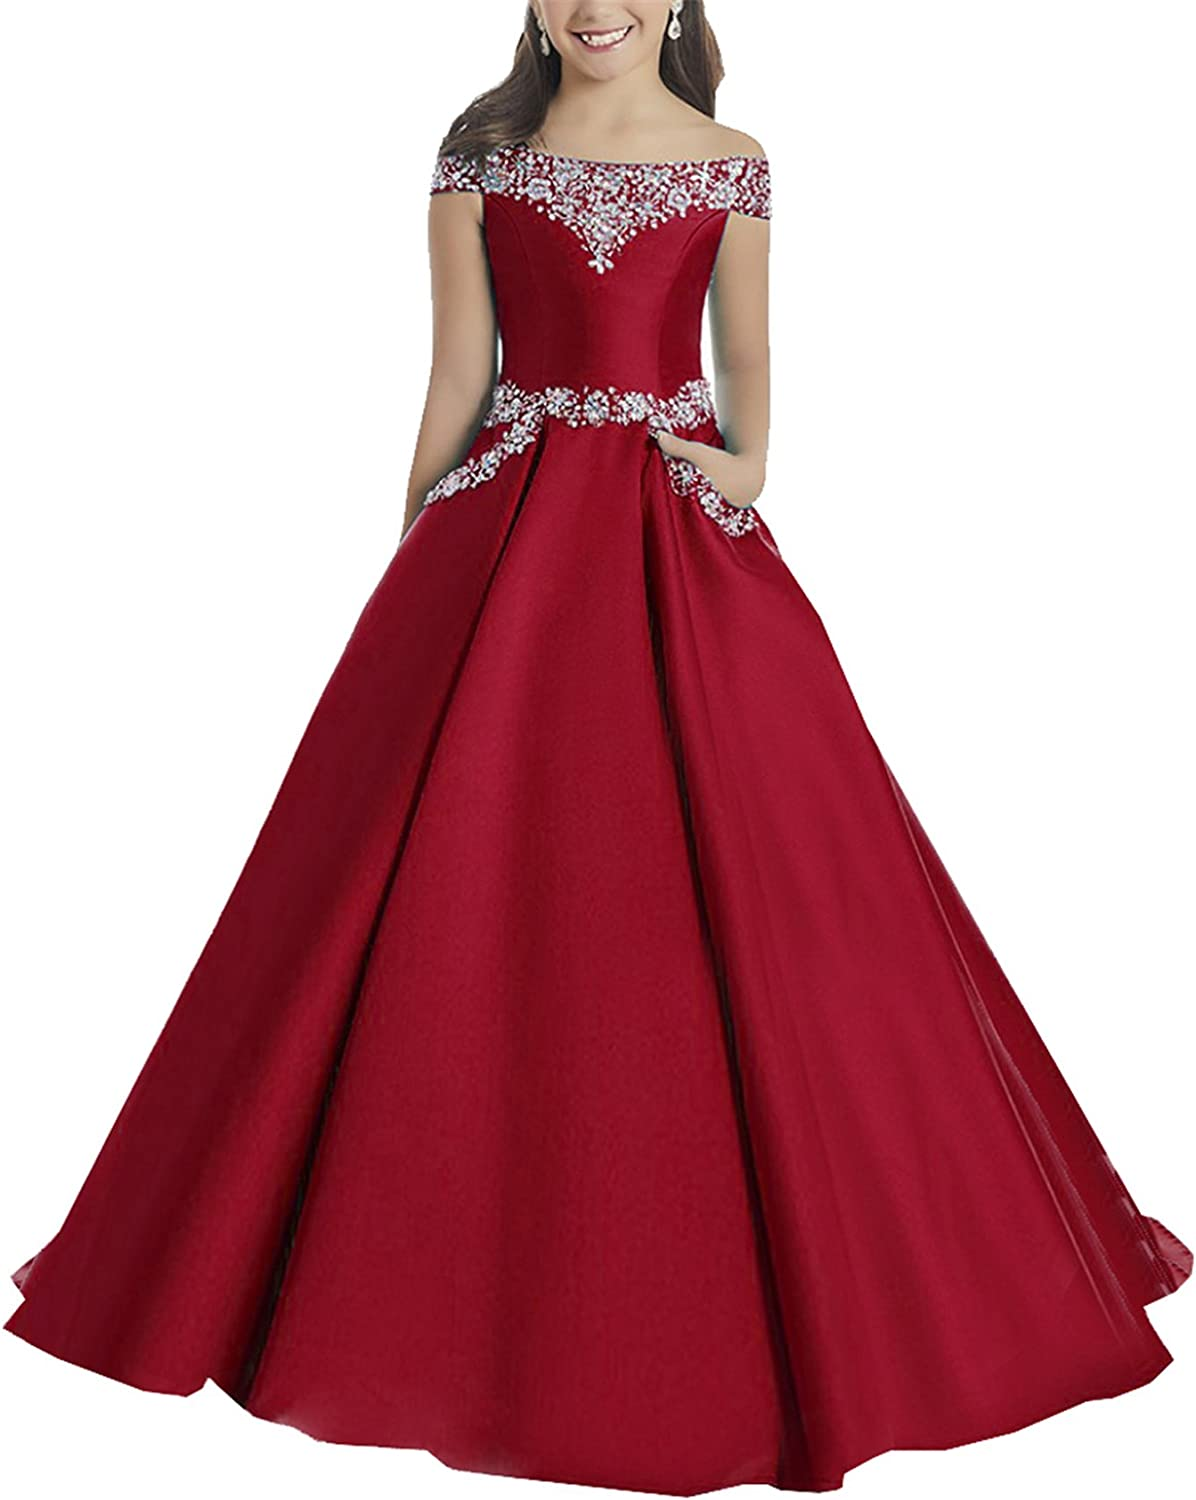 Yang Princess Girls Boat Neck Beaded Evening Gowns Long Pageant Dresses